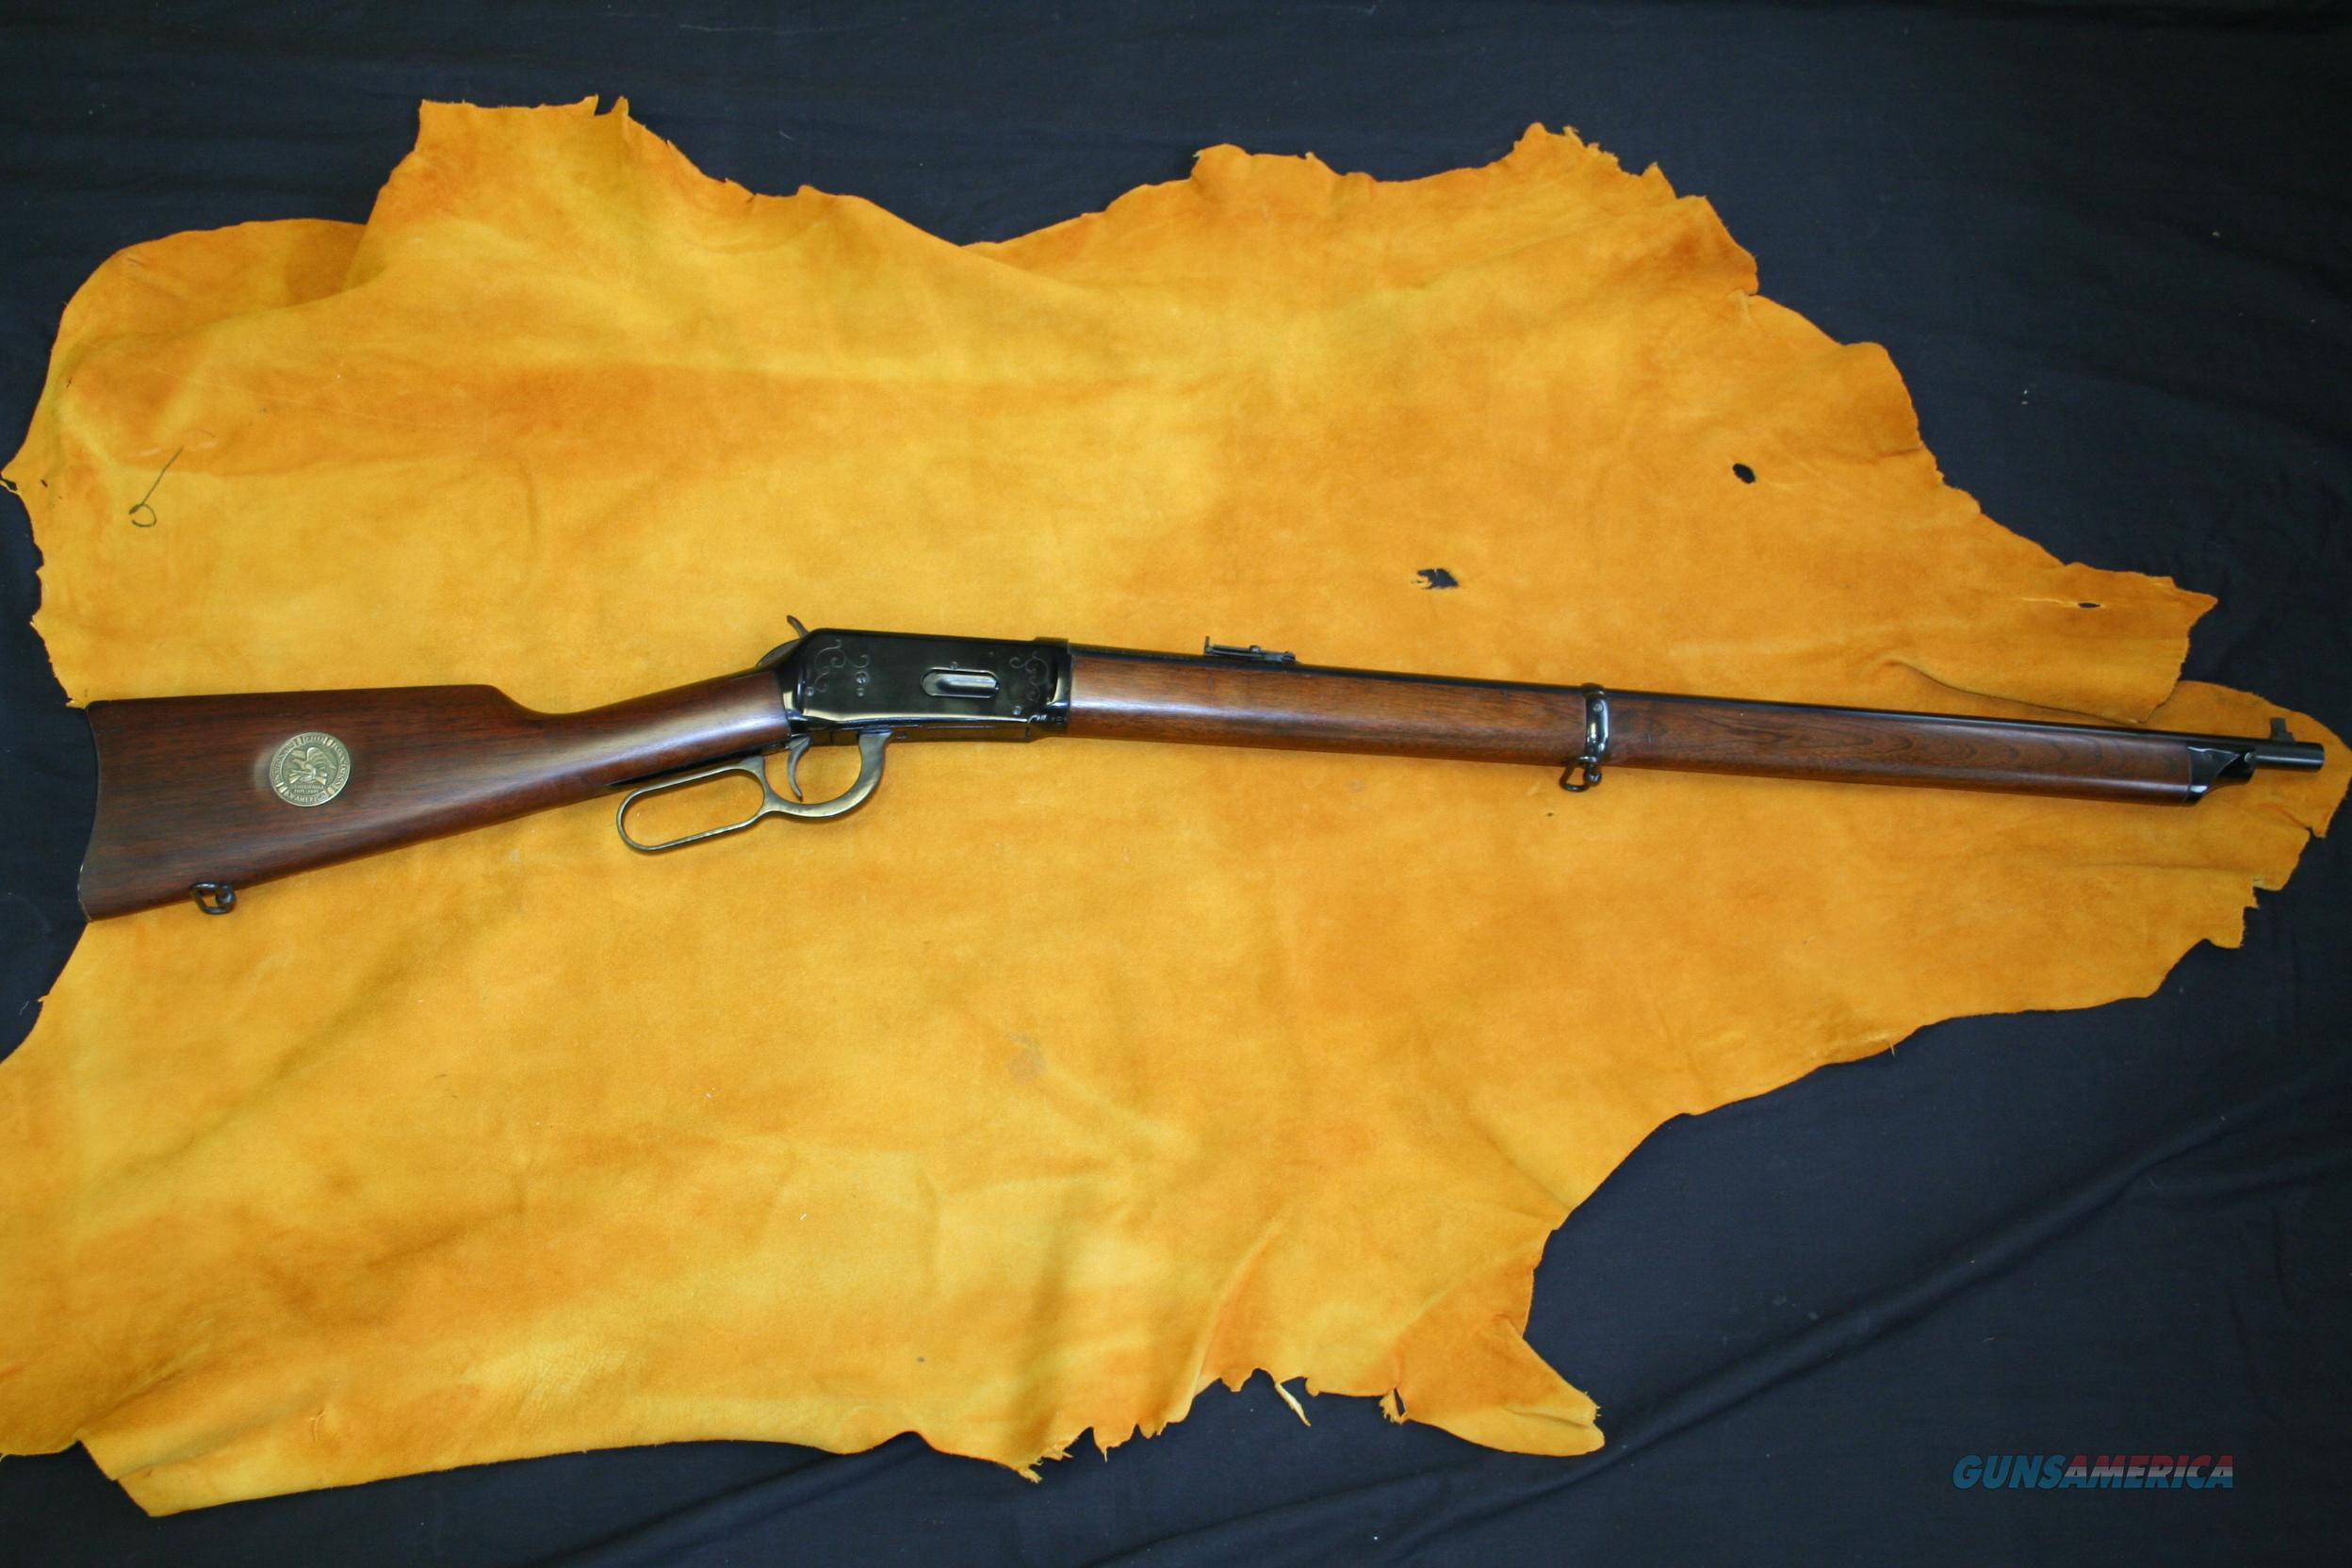 WINCHESTER 1894 - NRA CENTENNIAL MUSKET 1871-1971 - 30-30WIN - LEVER-ACTION  Guns > Rifles > Winchester Rifle Commemoratives